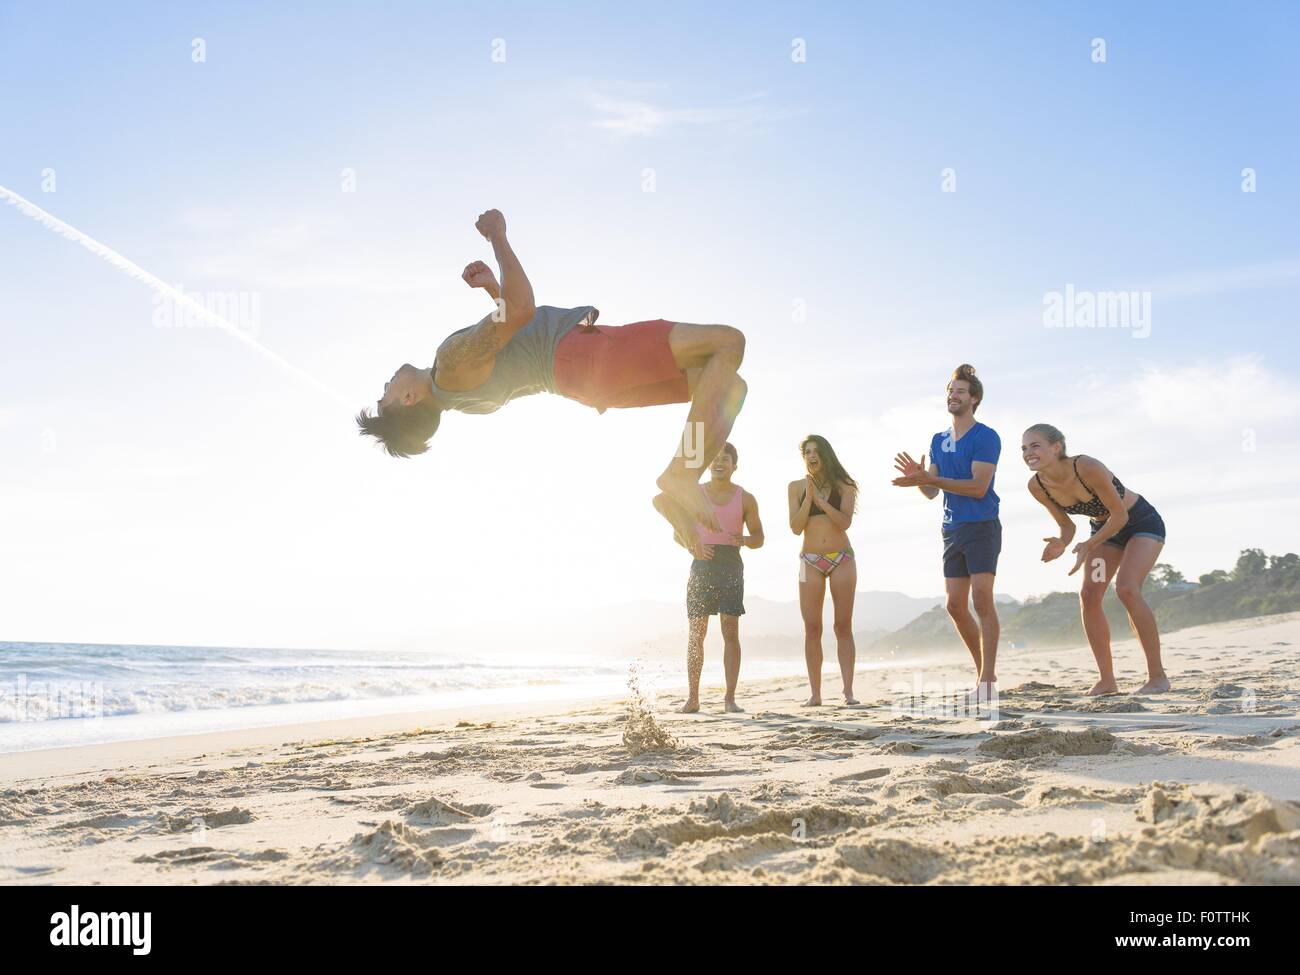 Group of friends on beach watching friend do somersault - Stock Image